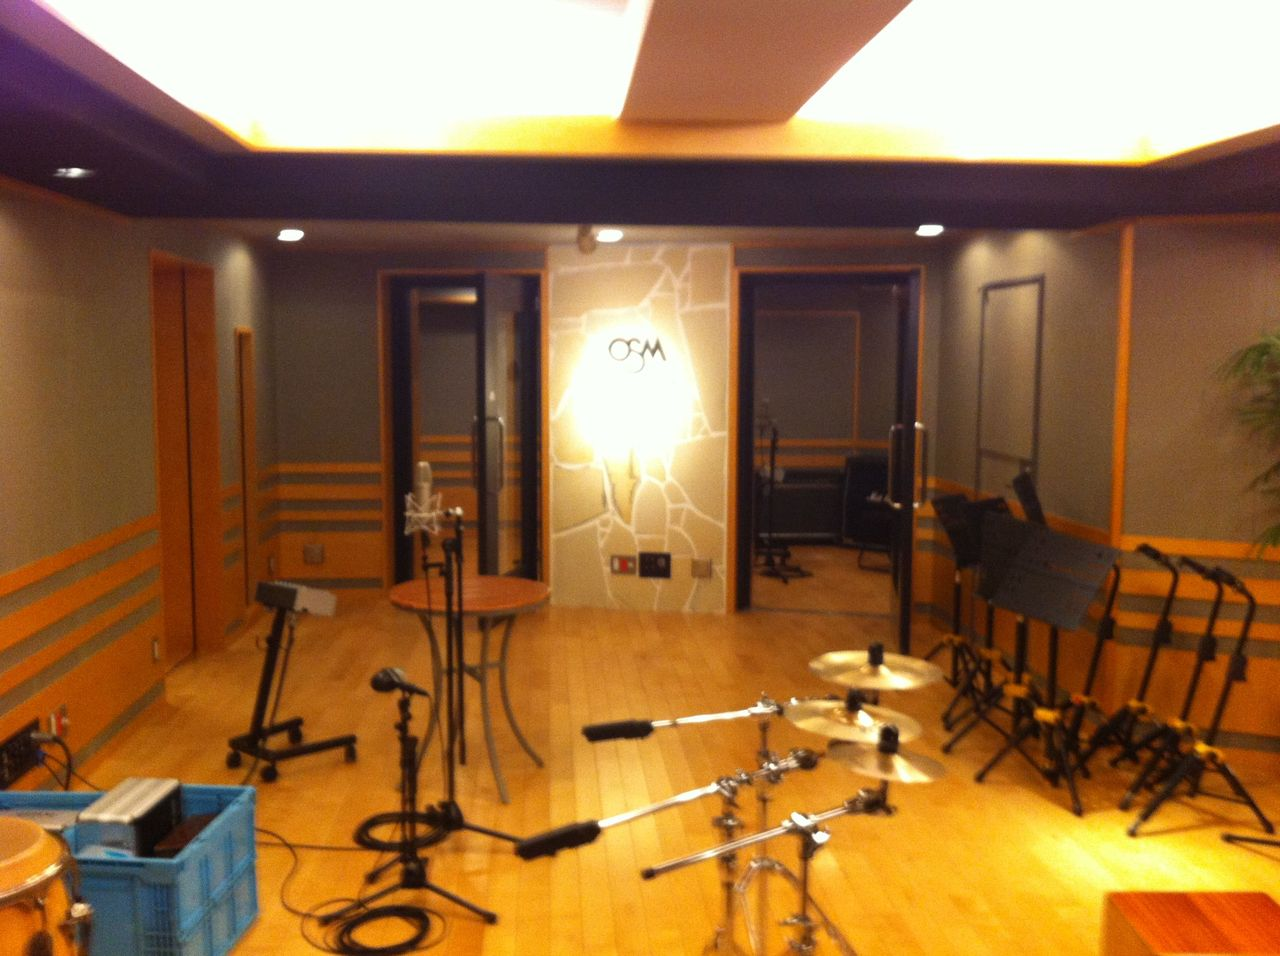 2012-05-14 - サラハンナ Recording at OSM1